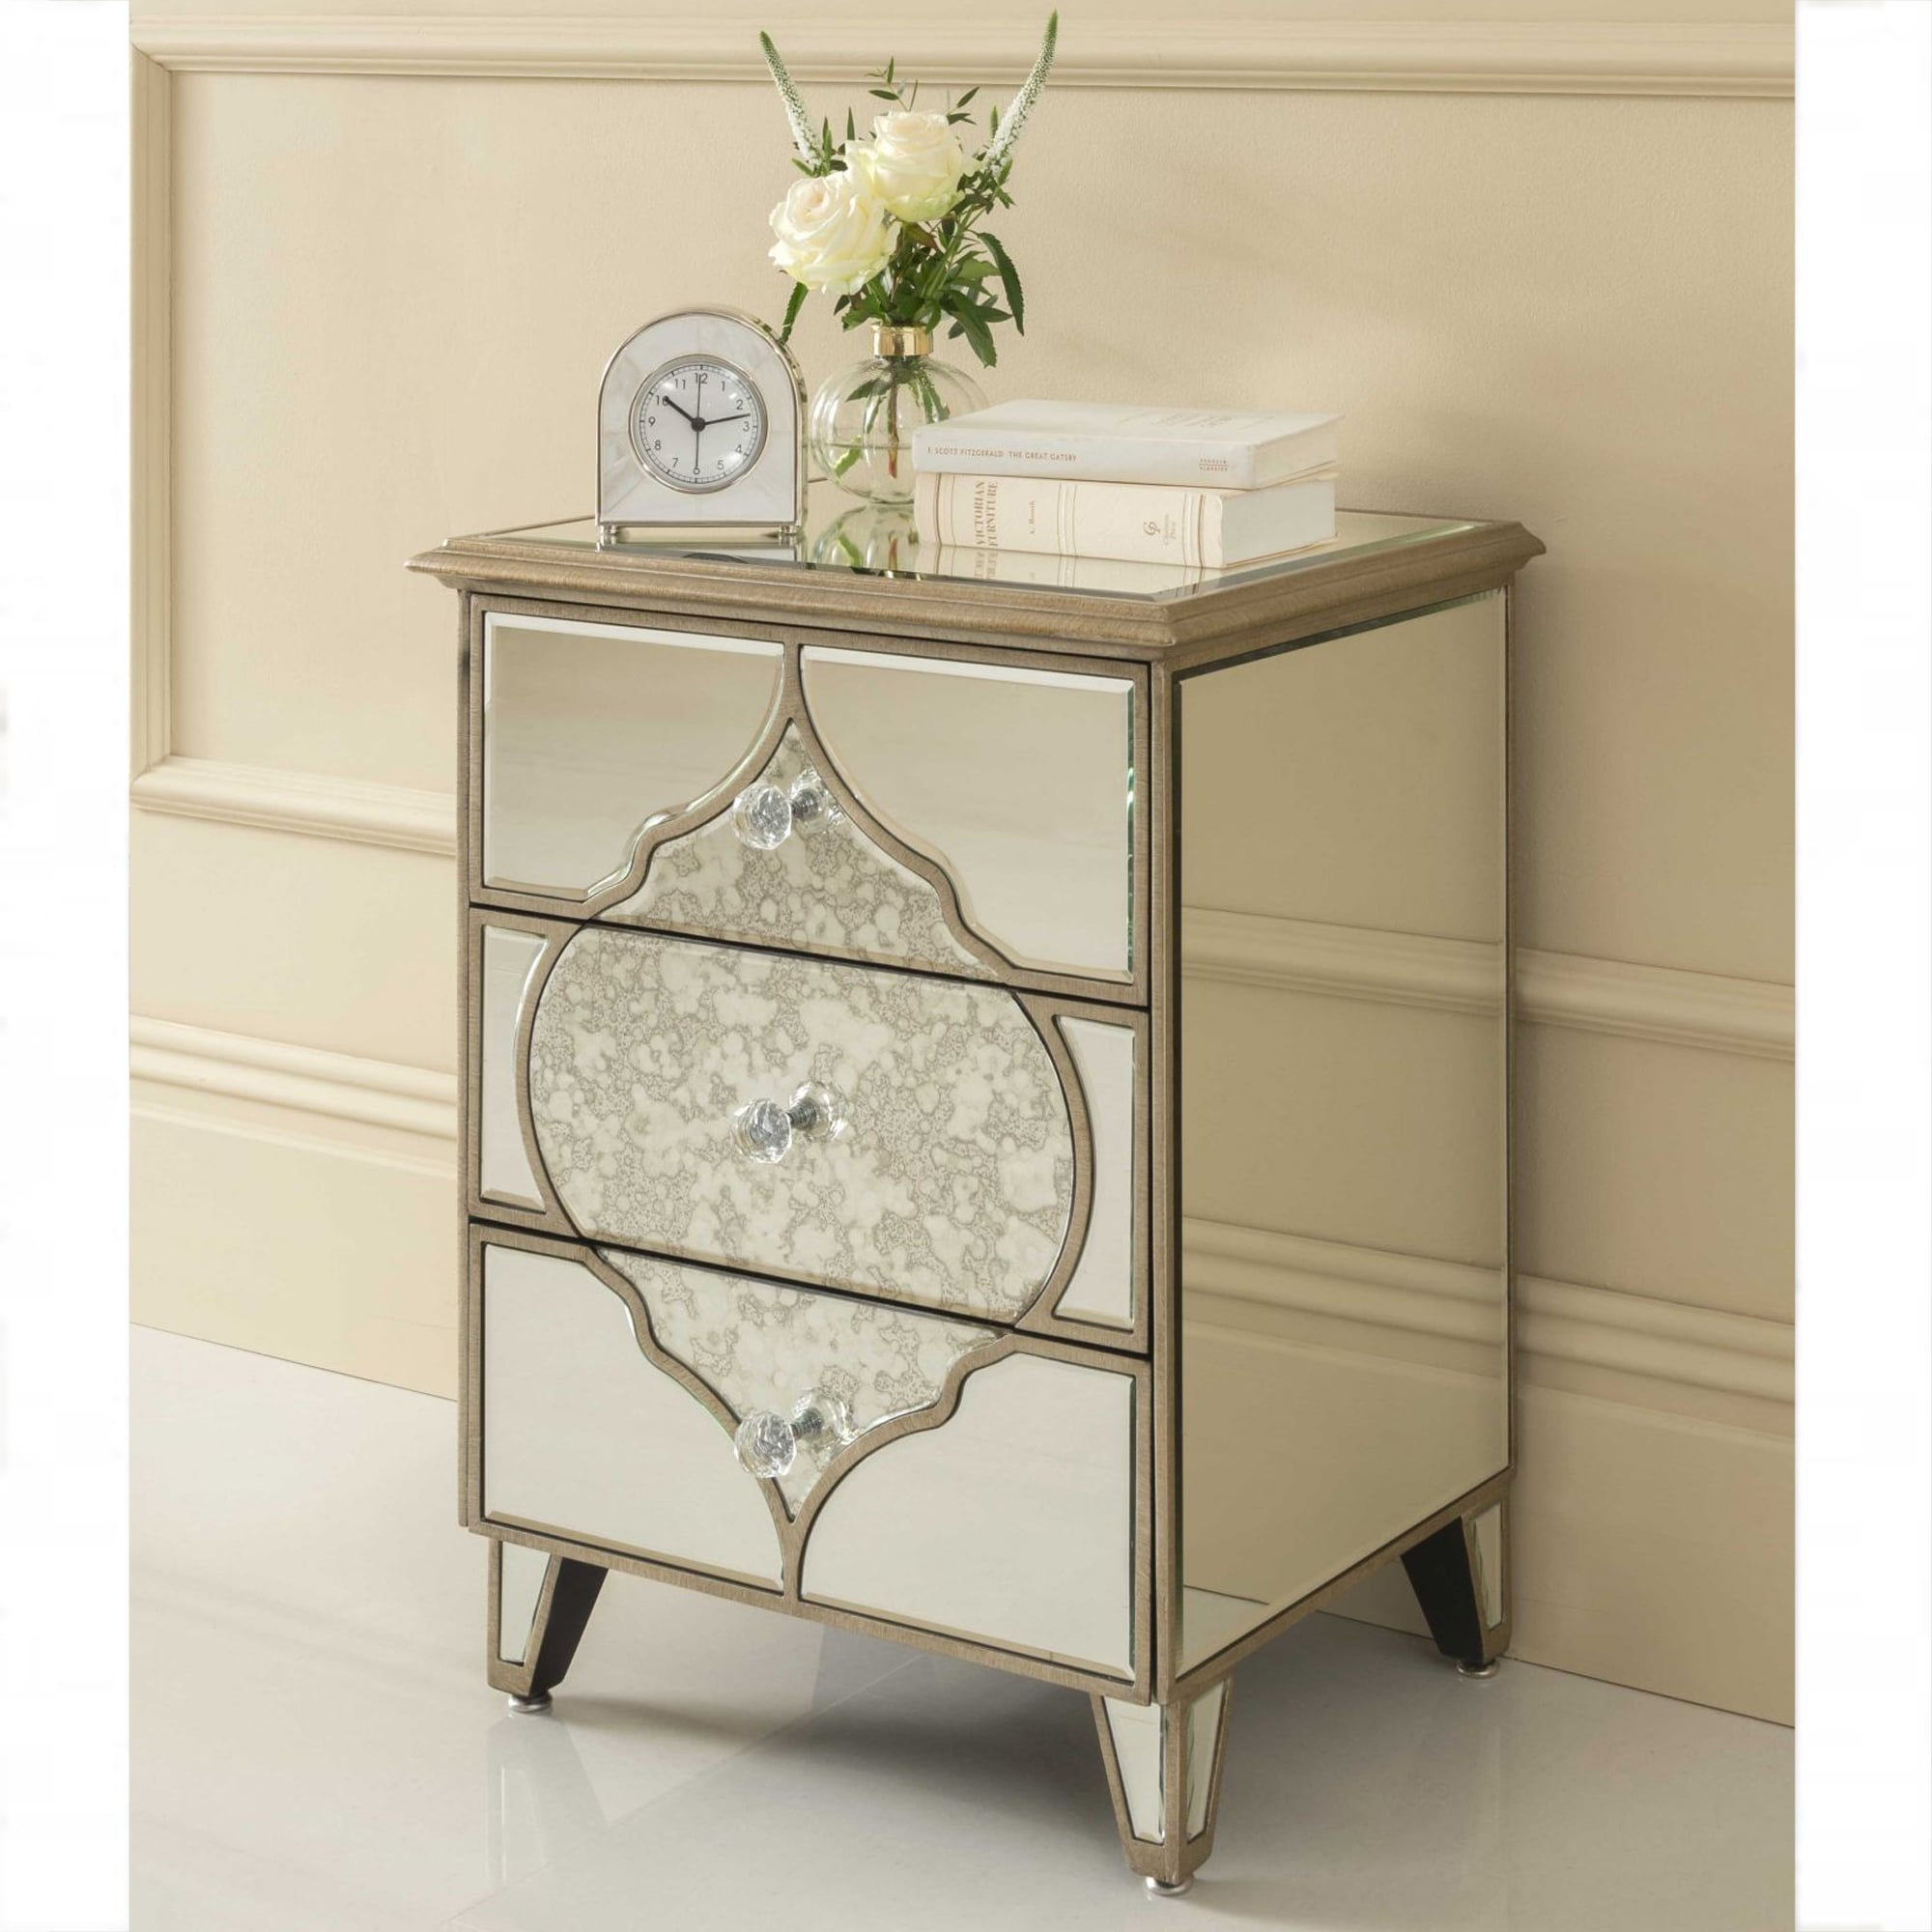 Sassari mirrored bedside table venetian glass furniture for Glass furniture